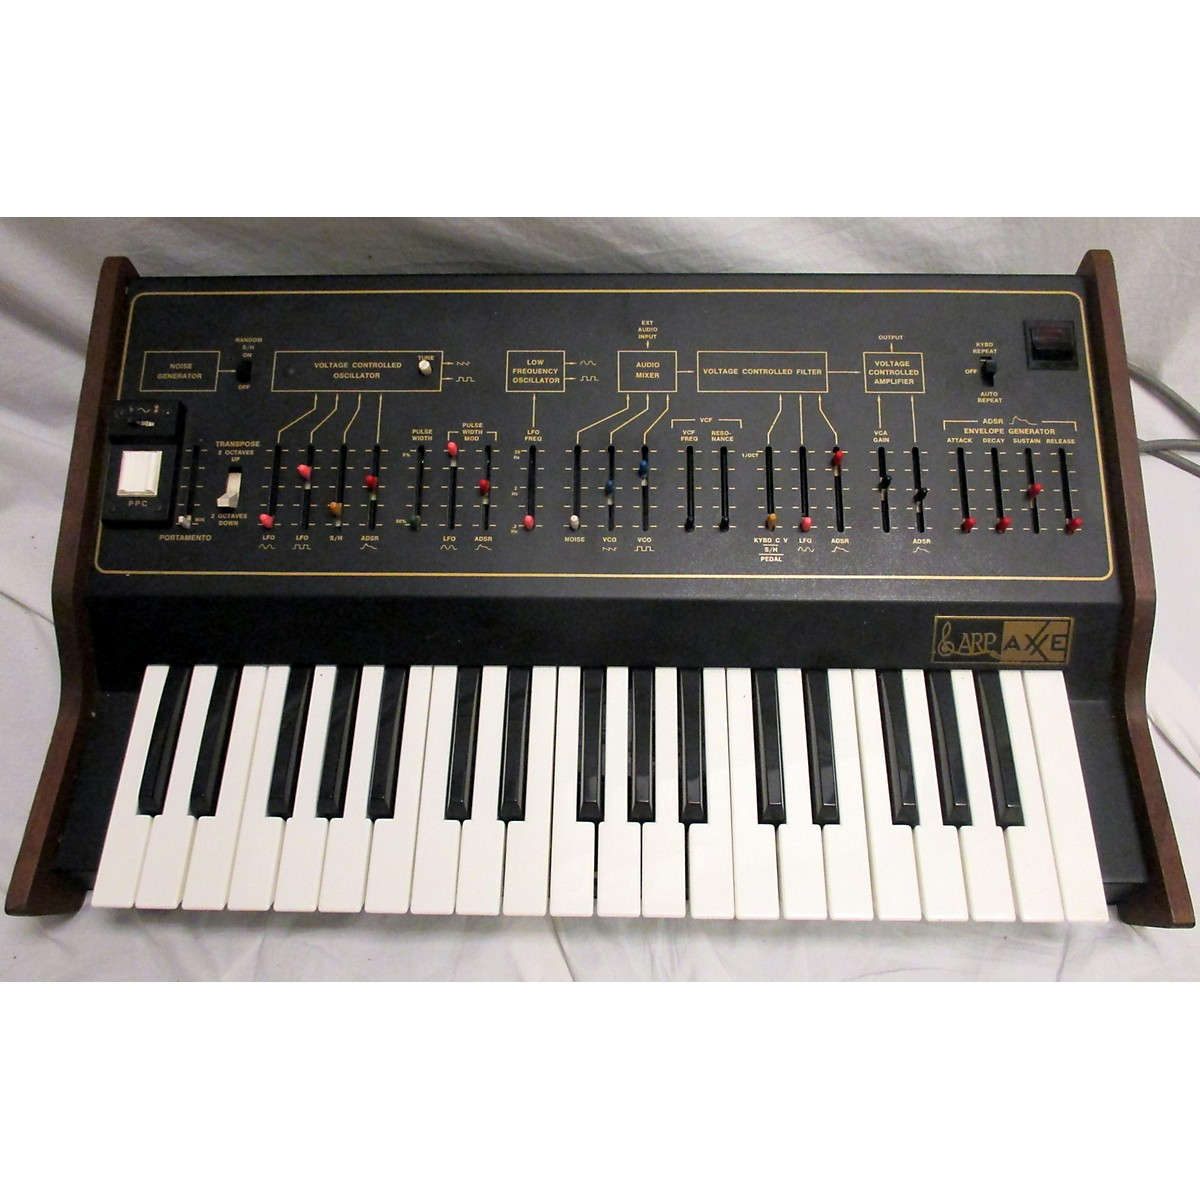 In Store Vintage Vintage 1970s ARP Axxe 2313 Analog Synthesizer Synthesizer